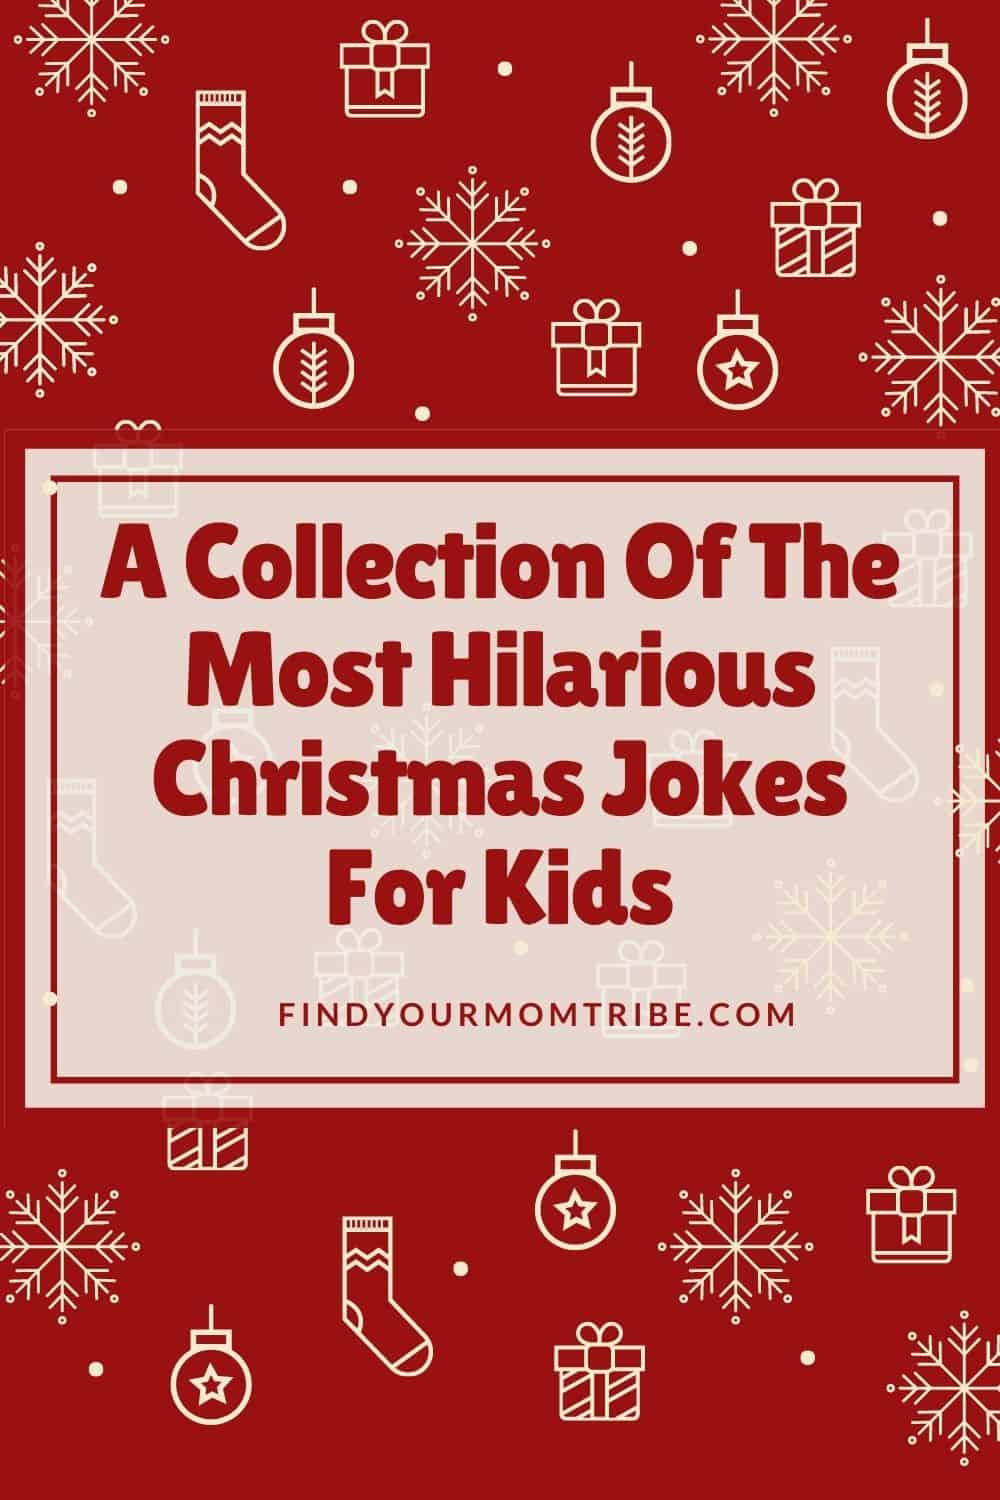 A Collection Of The Most Hilarious Christmas Jokes For Kids